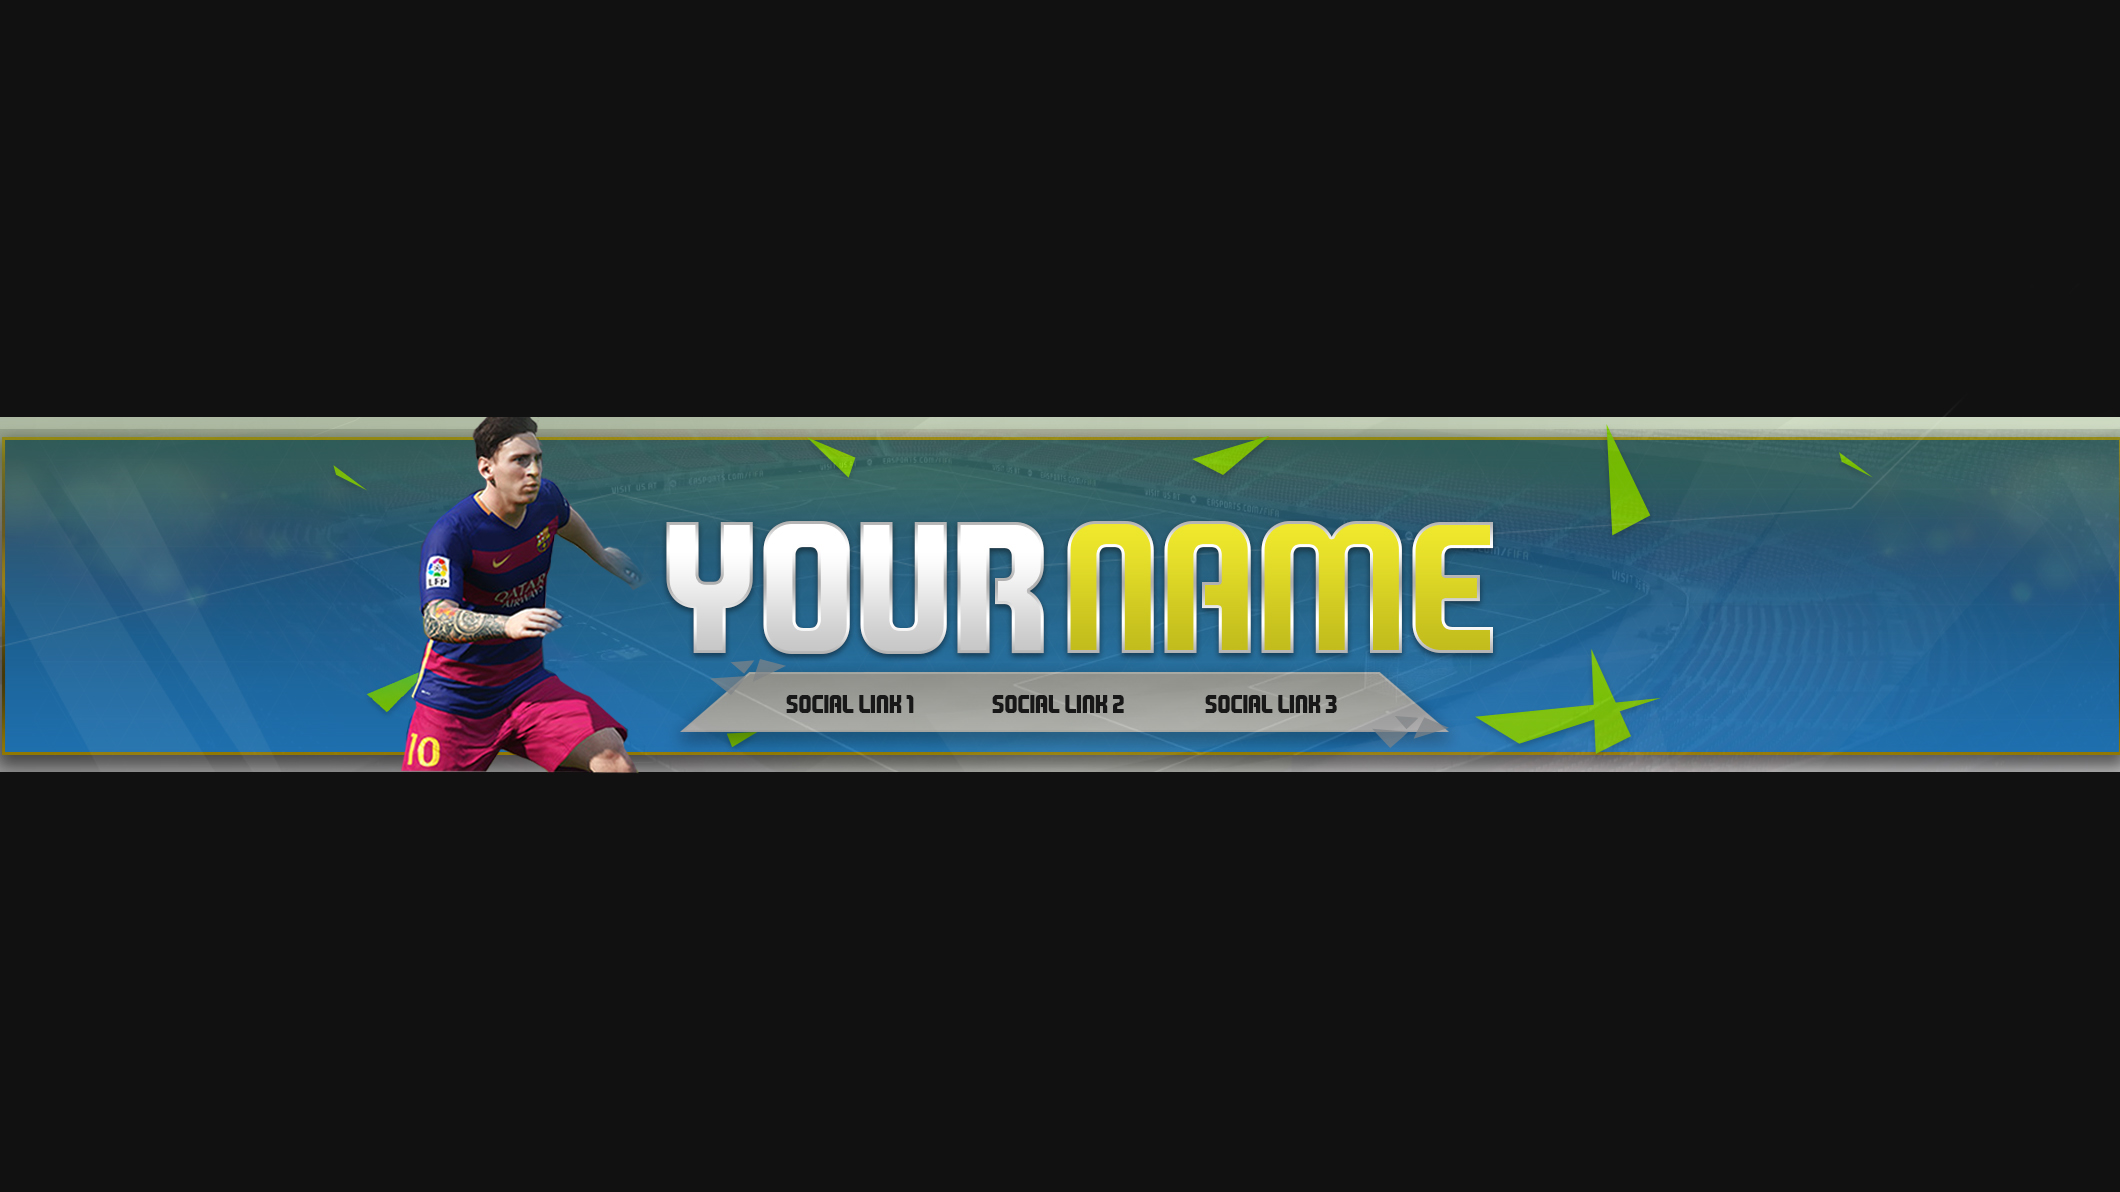 NEW] FIFA 16 YouTube Channel Art Template (FREE) on Behance